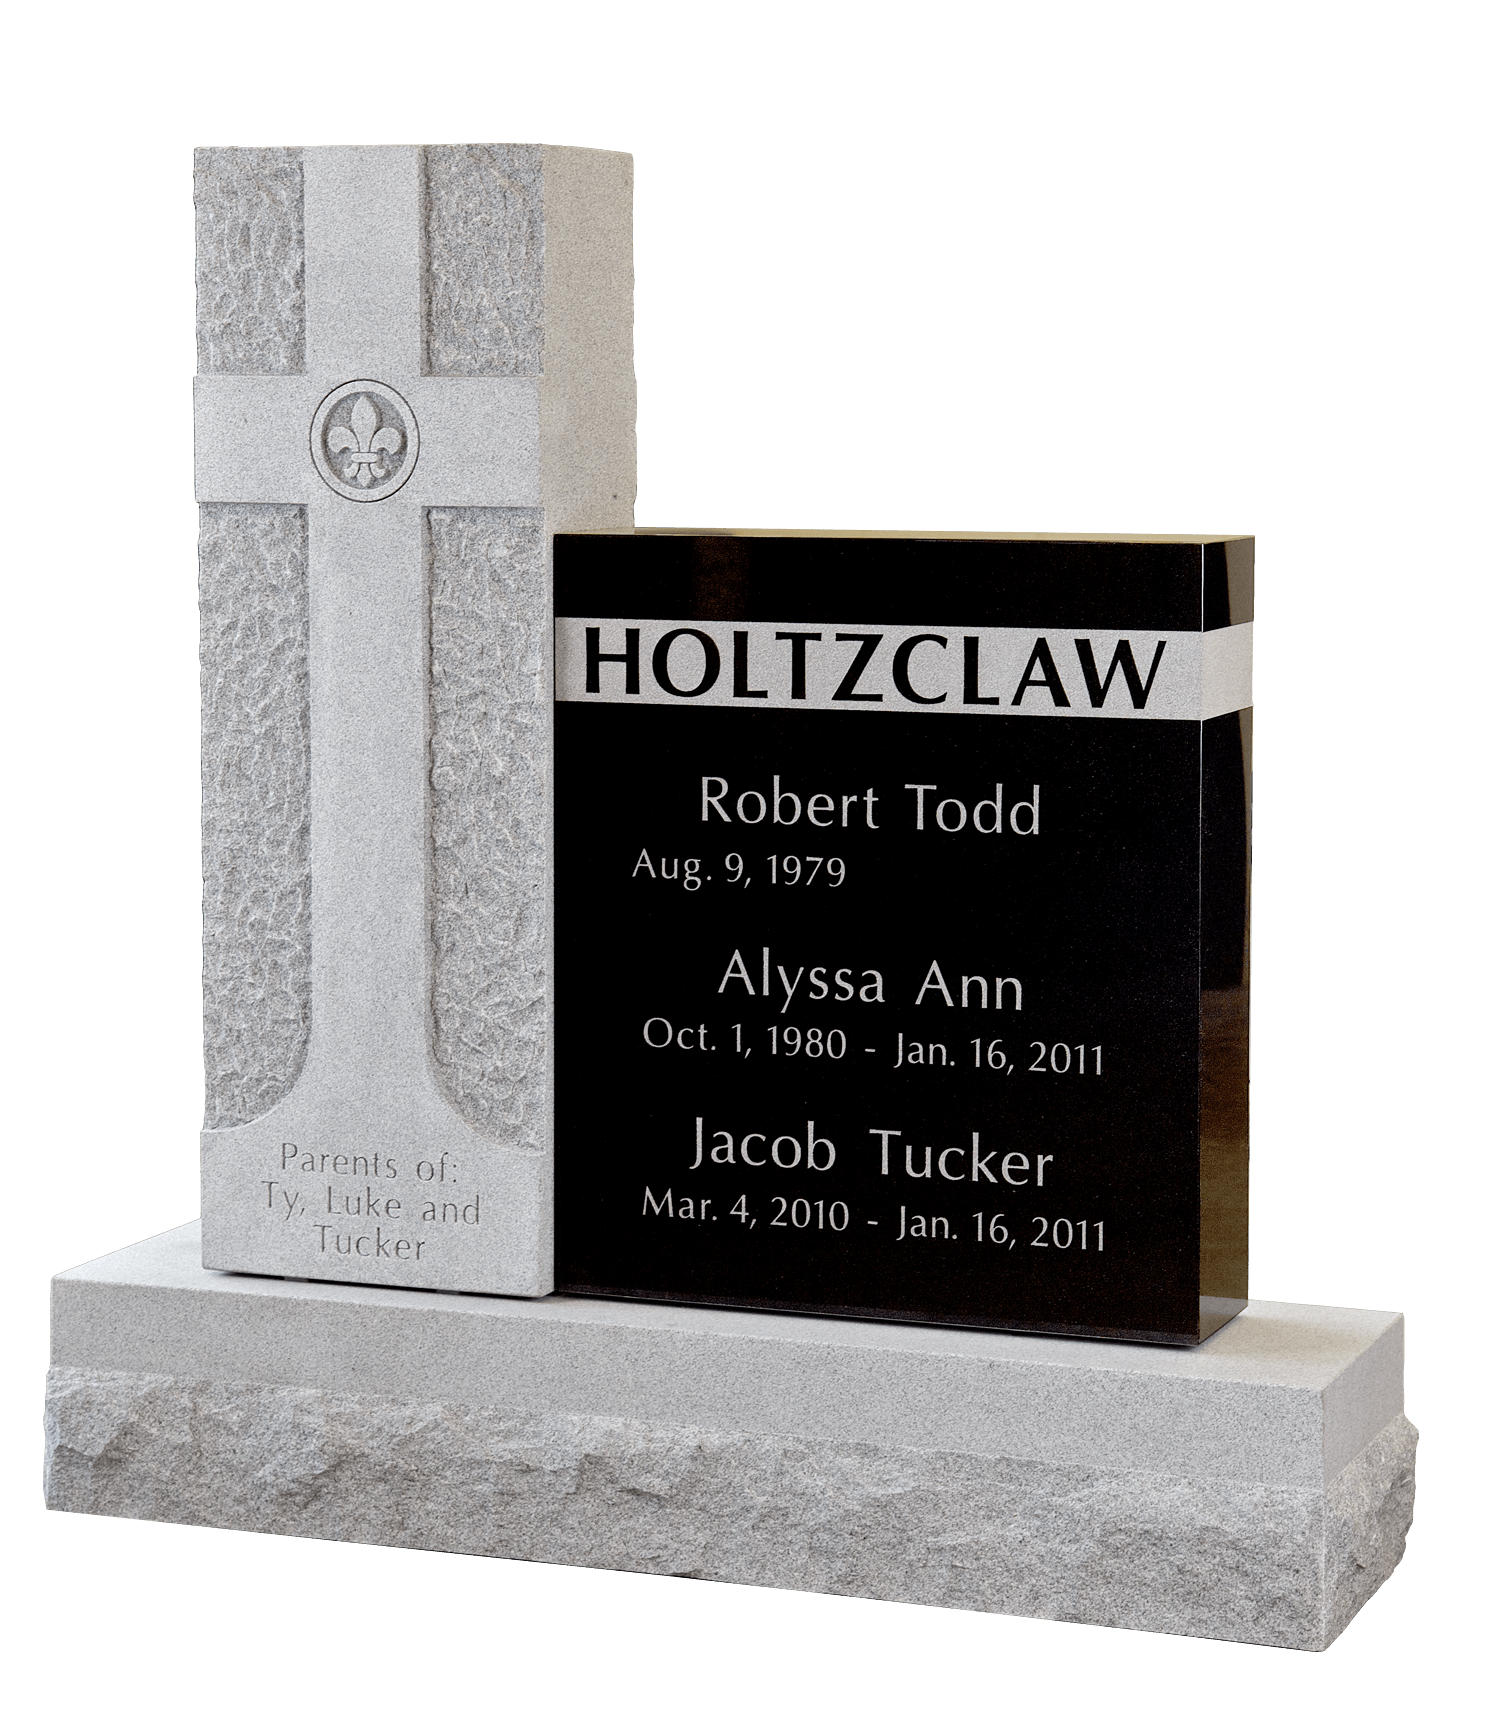 Holtzclaw headstone, Headstone in Magnolia Cemetery, Beaumont, TX